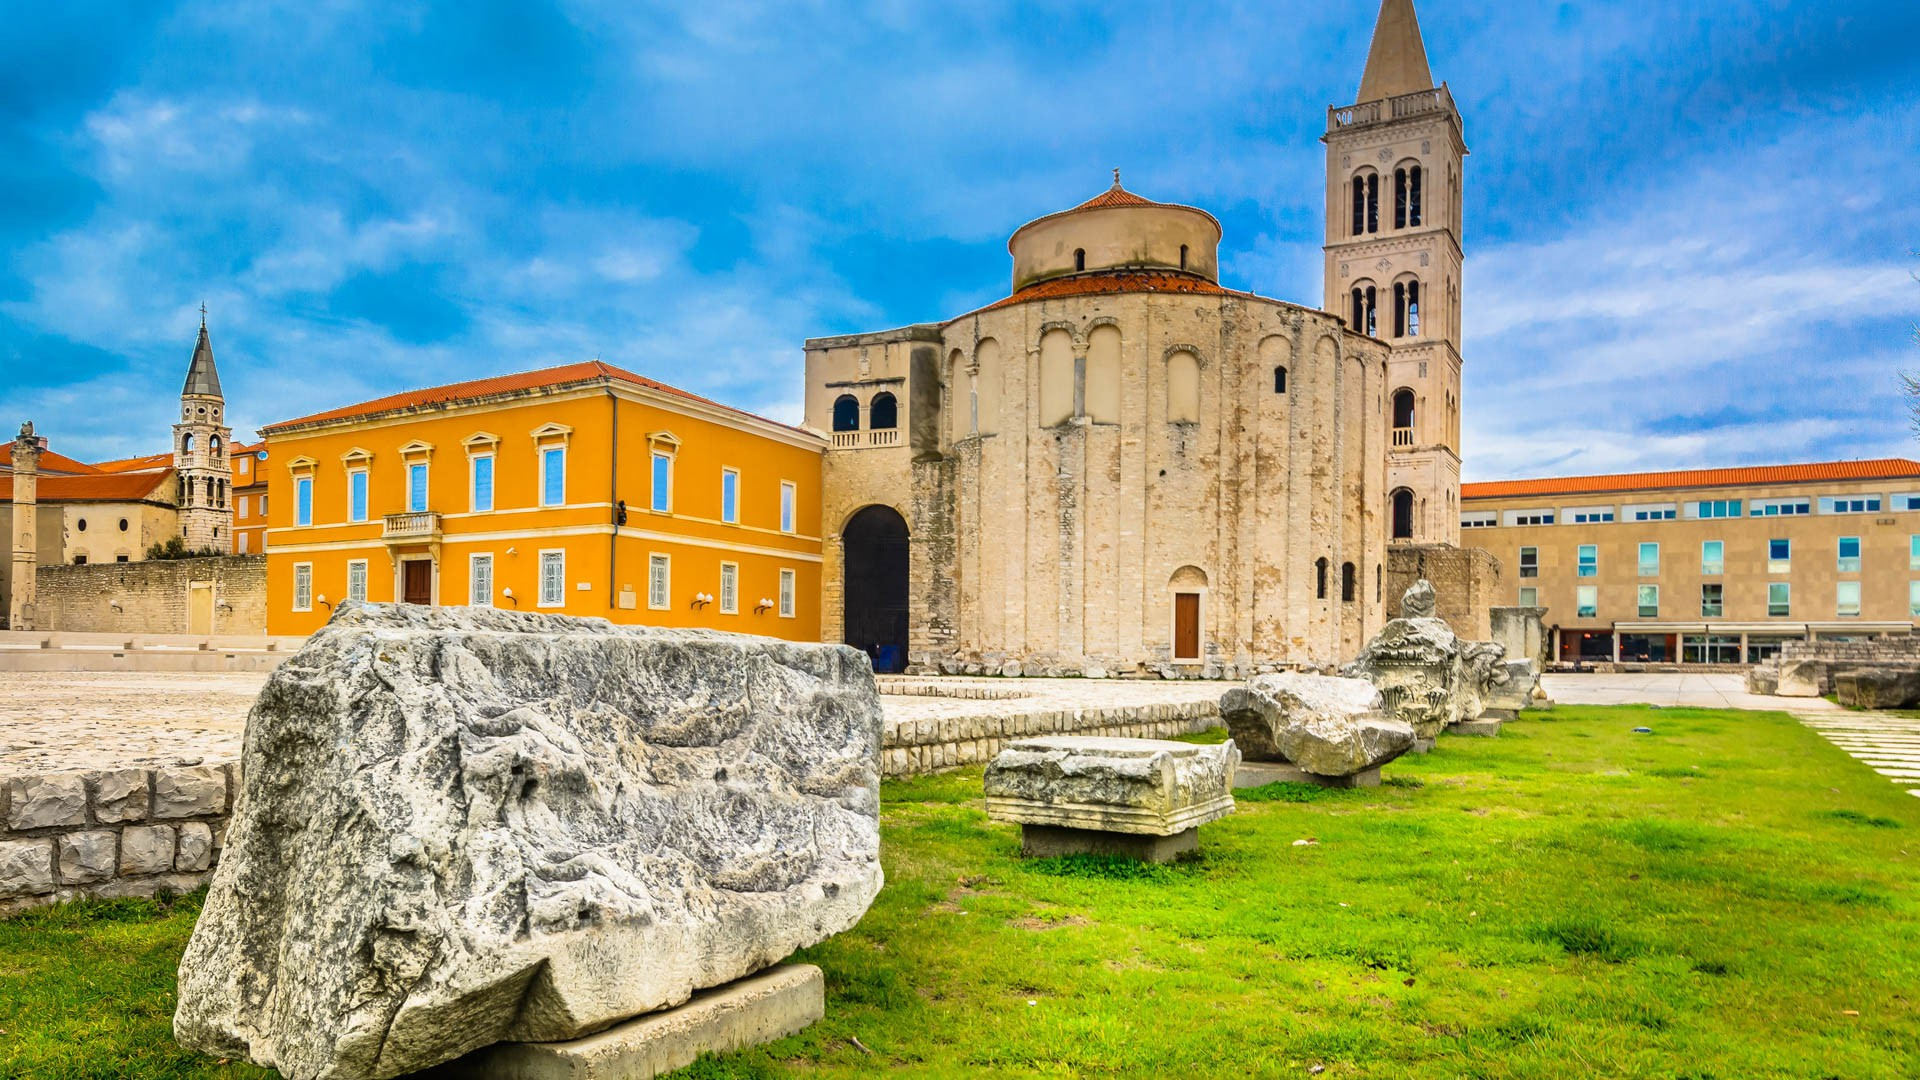 Zadar - Adriatic Sea | Croatia Cruise Croatia Cruise